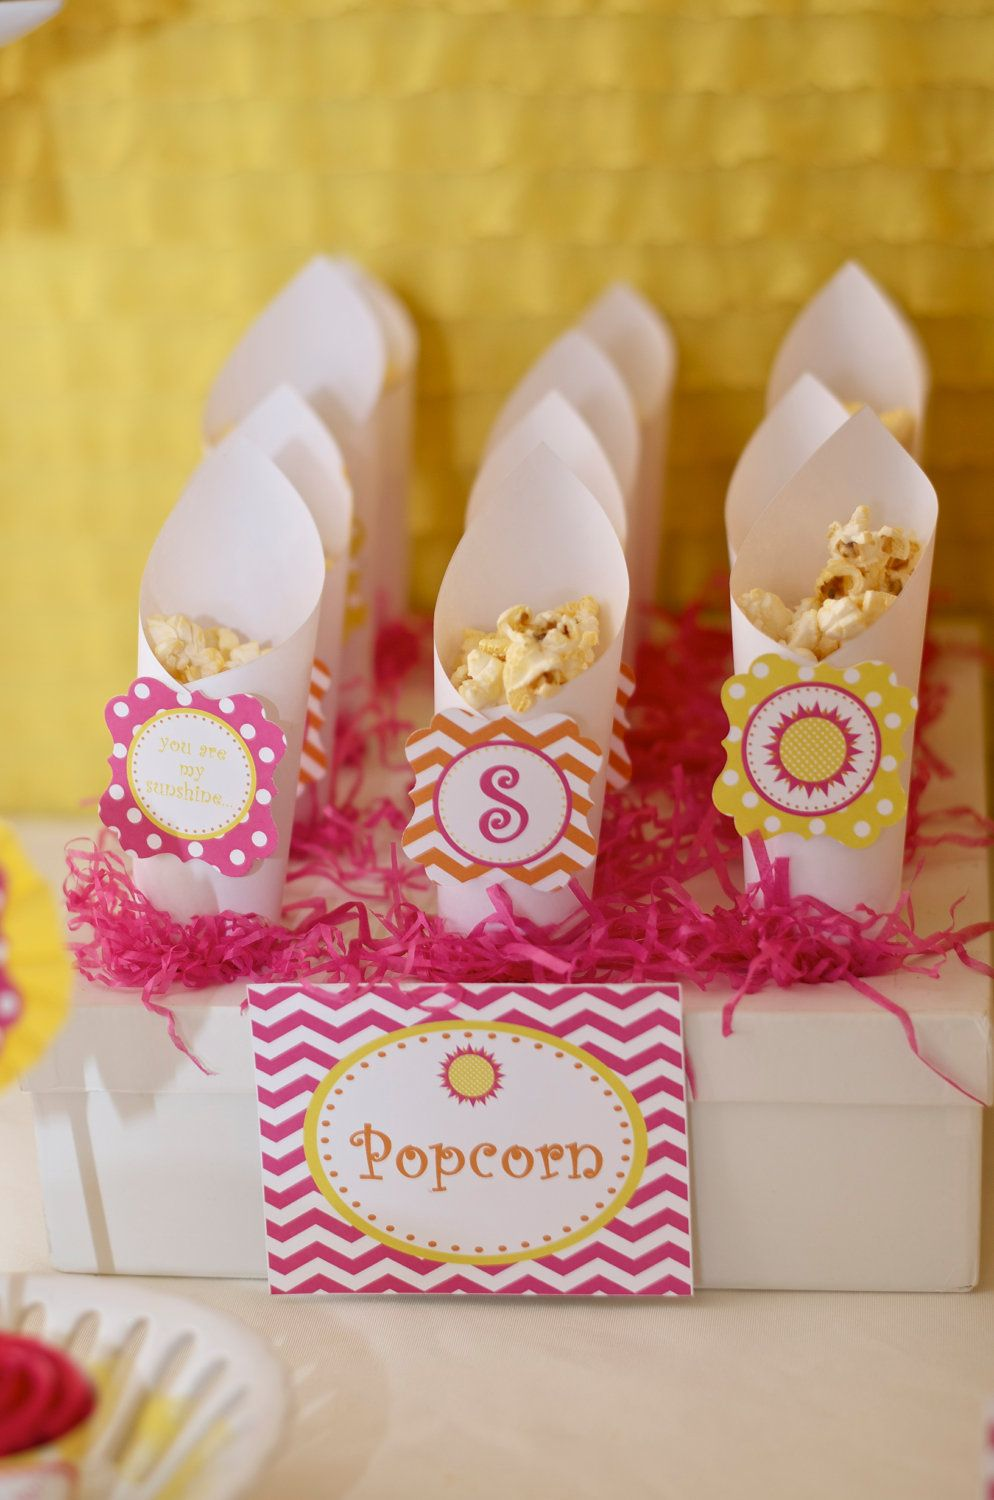 Cute holders for popcorn or other snacks - Sunshine